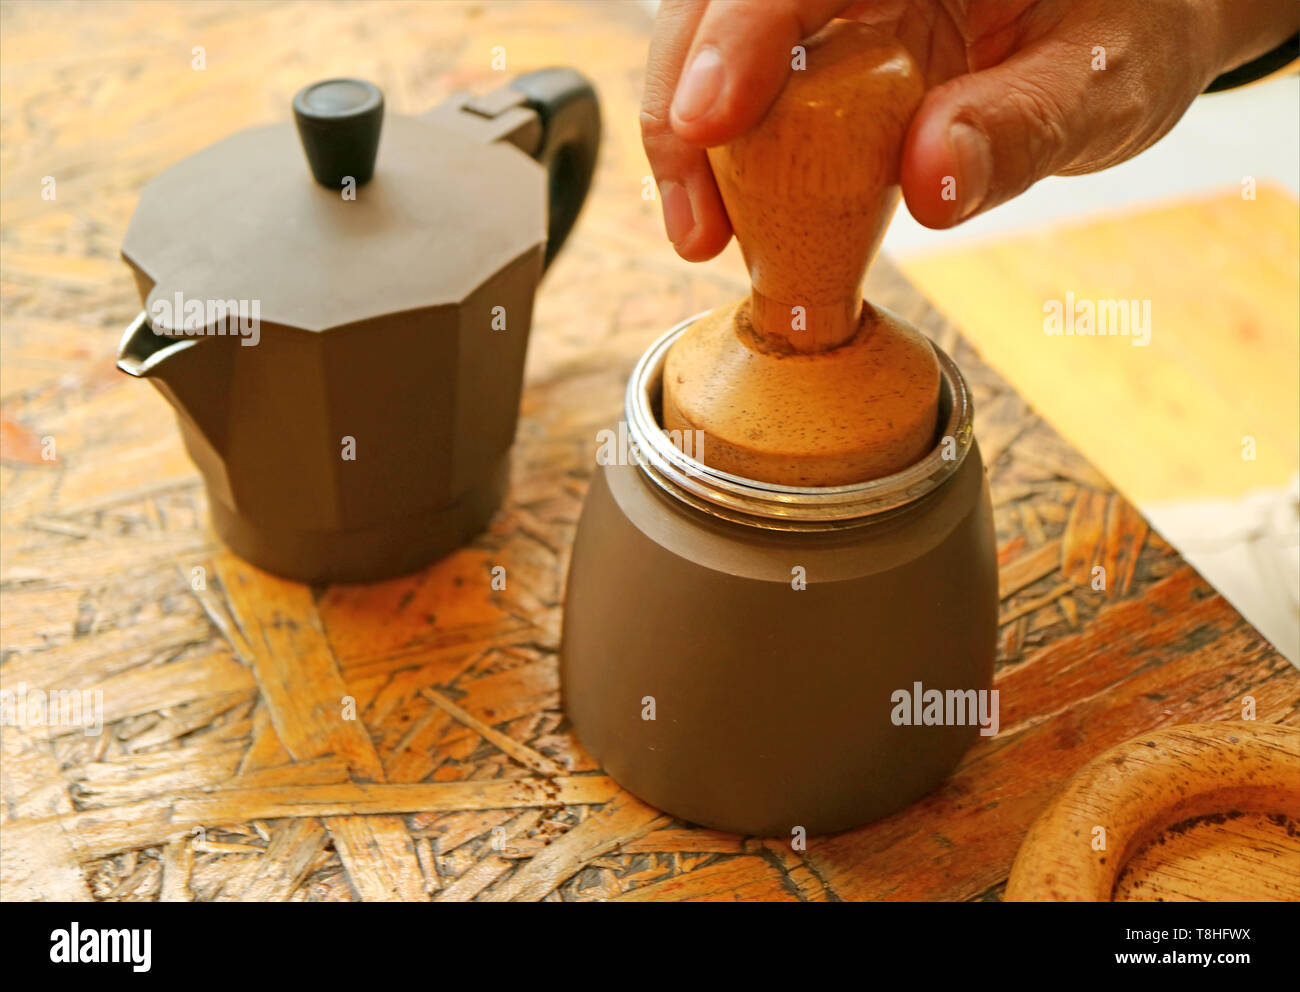 Hand Slightly Tapping Ground Coffee with Wooden Tamper for a Flat Surface before Brewing Aromatic Coffee - Stock Image